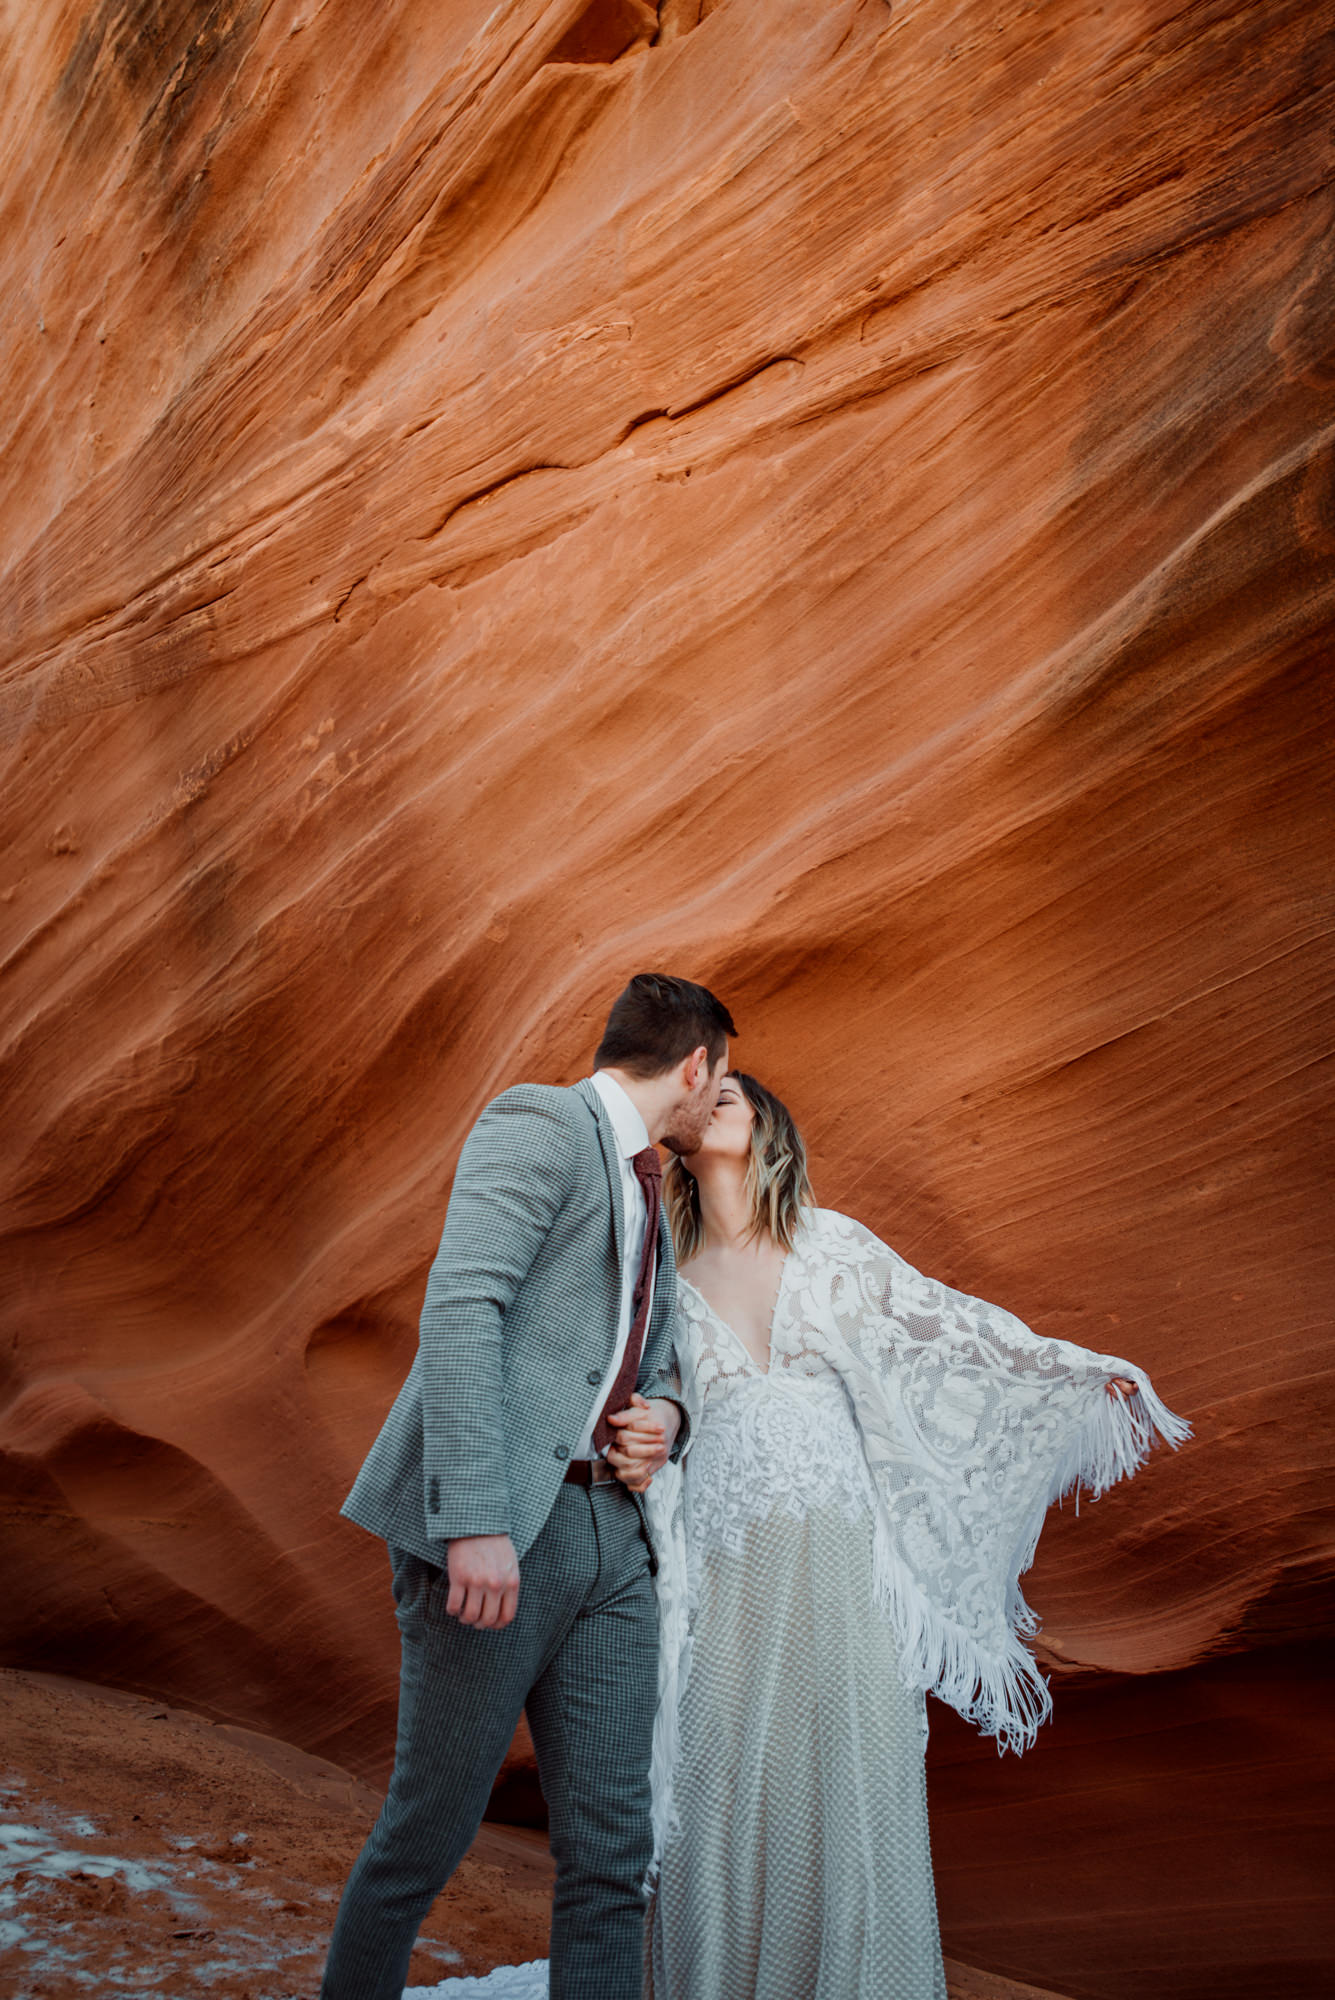 A bride and groom enjoying their small elopement wedding in Arizona.